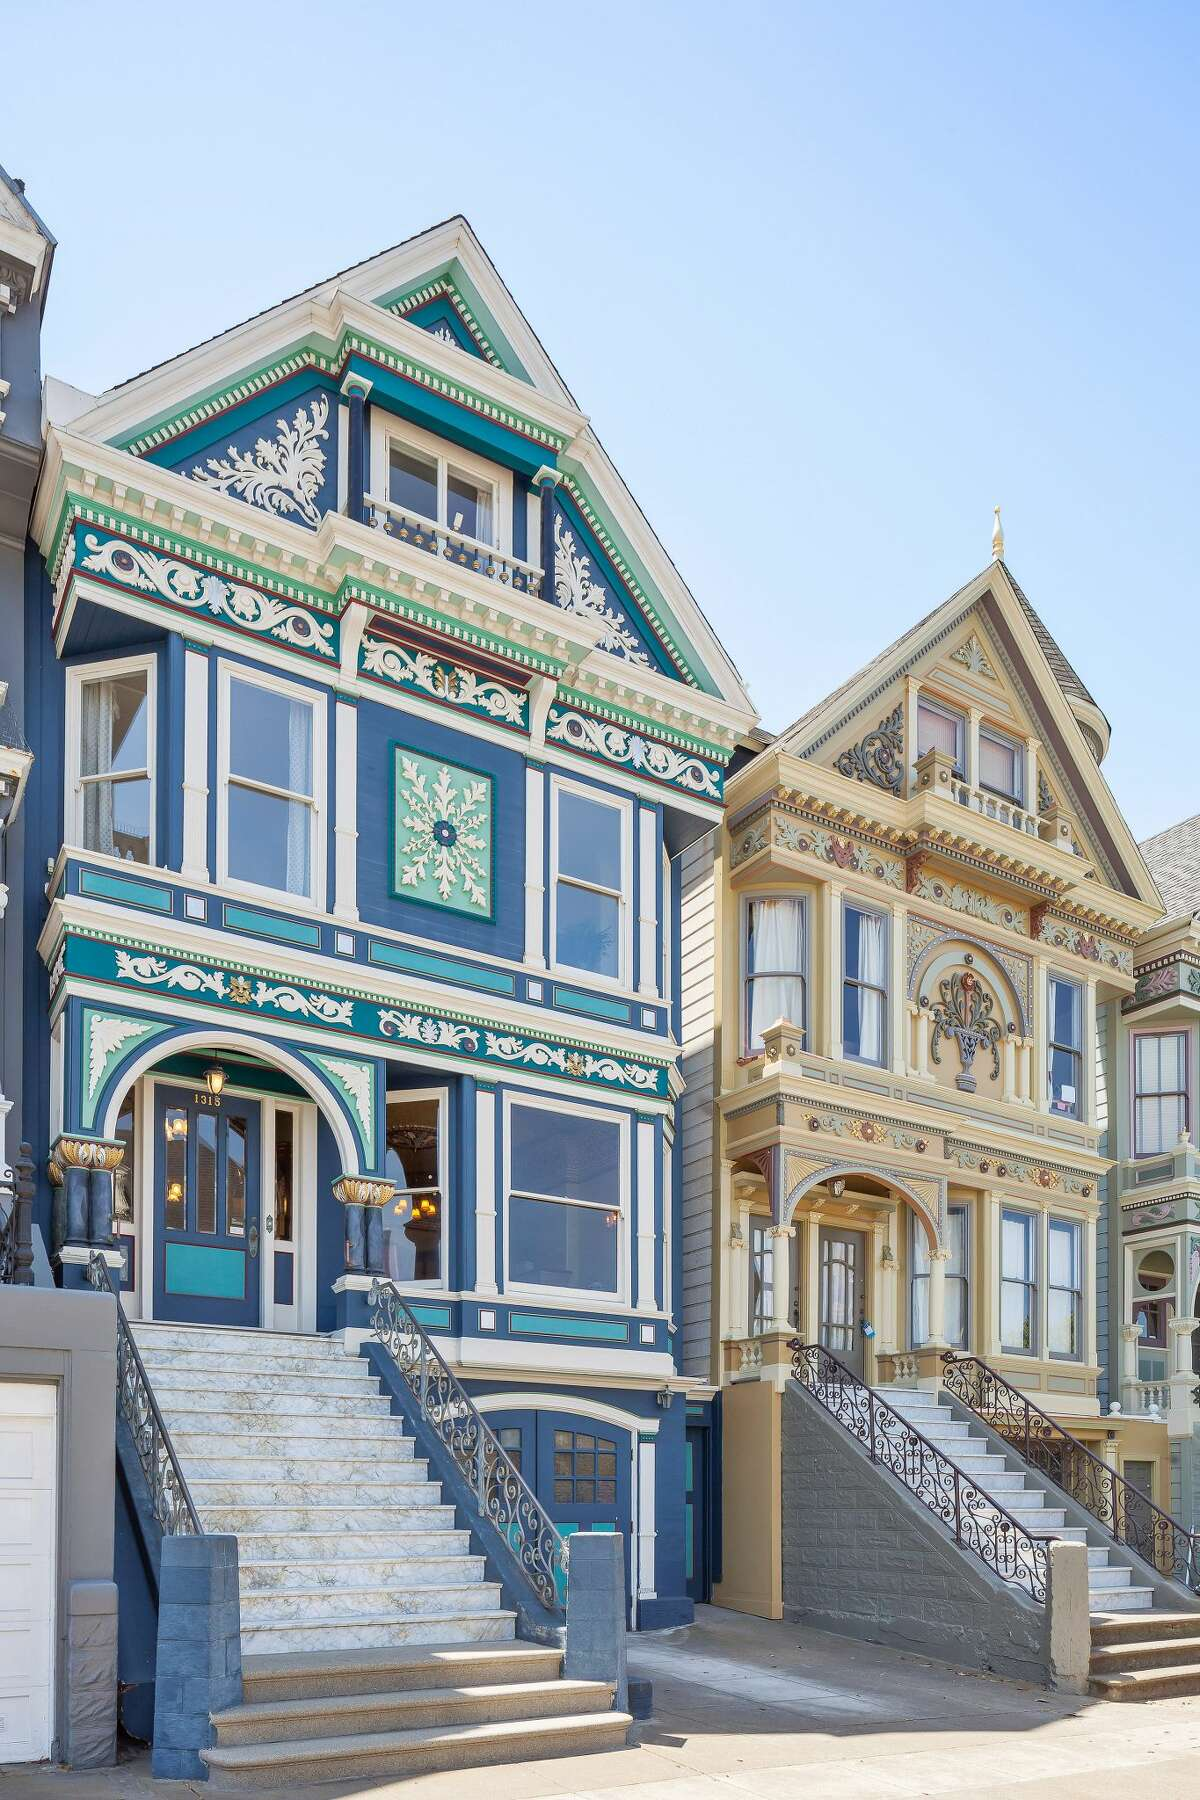 Queen Anne perfection: One of San Francisco's famed Four Seasons' Victorians is on the market for $2.985 million. The four-bedroom has been lovingly restored by an owner who has lived in the home for nearly 40 years.